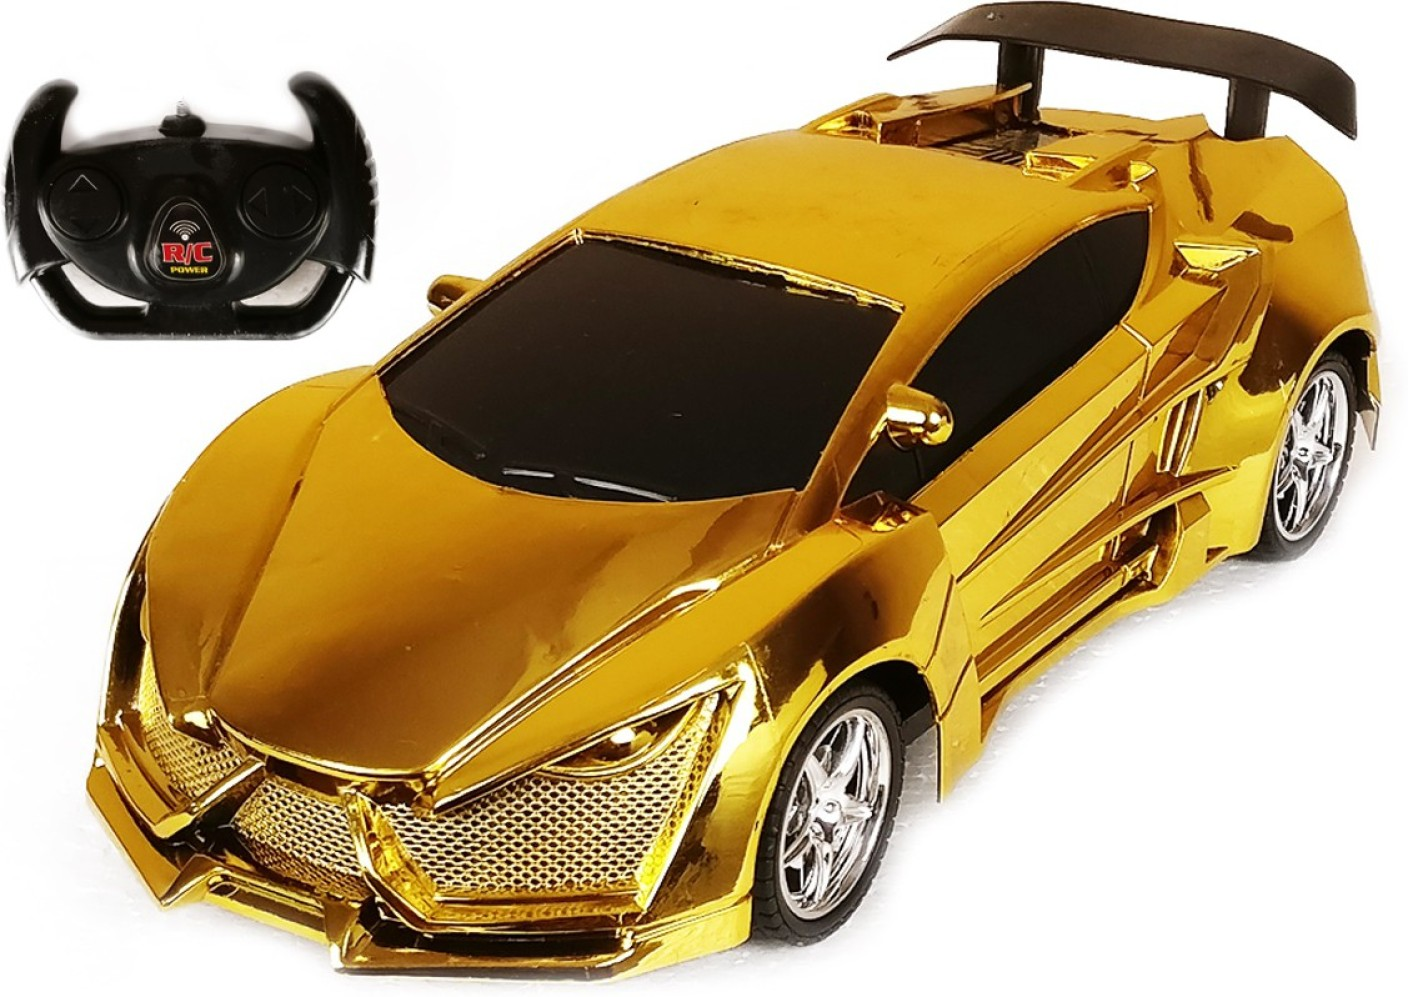 Tabby Toys Limited Gold Edition Glossy Remote Control